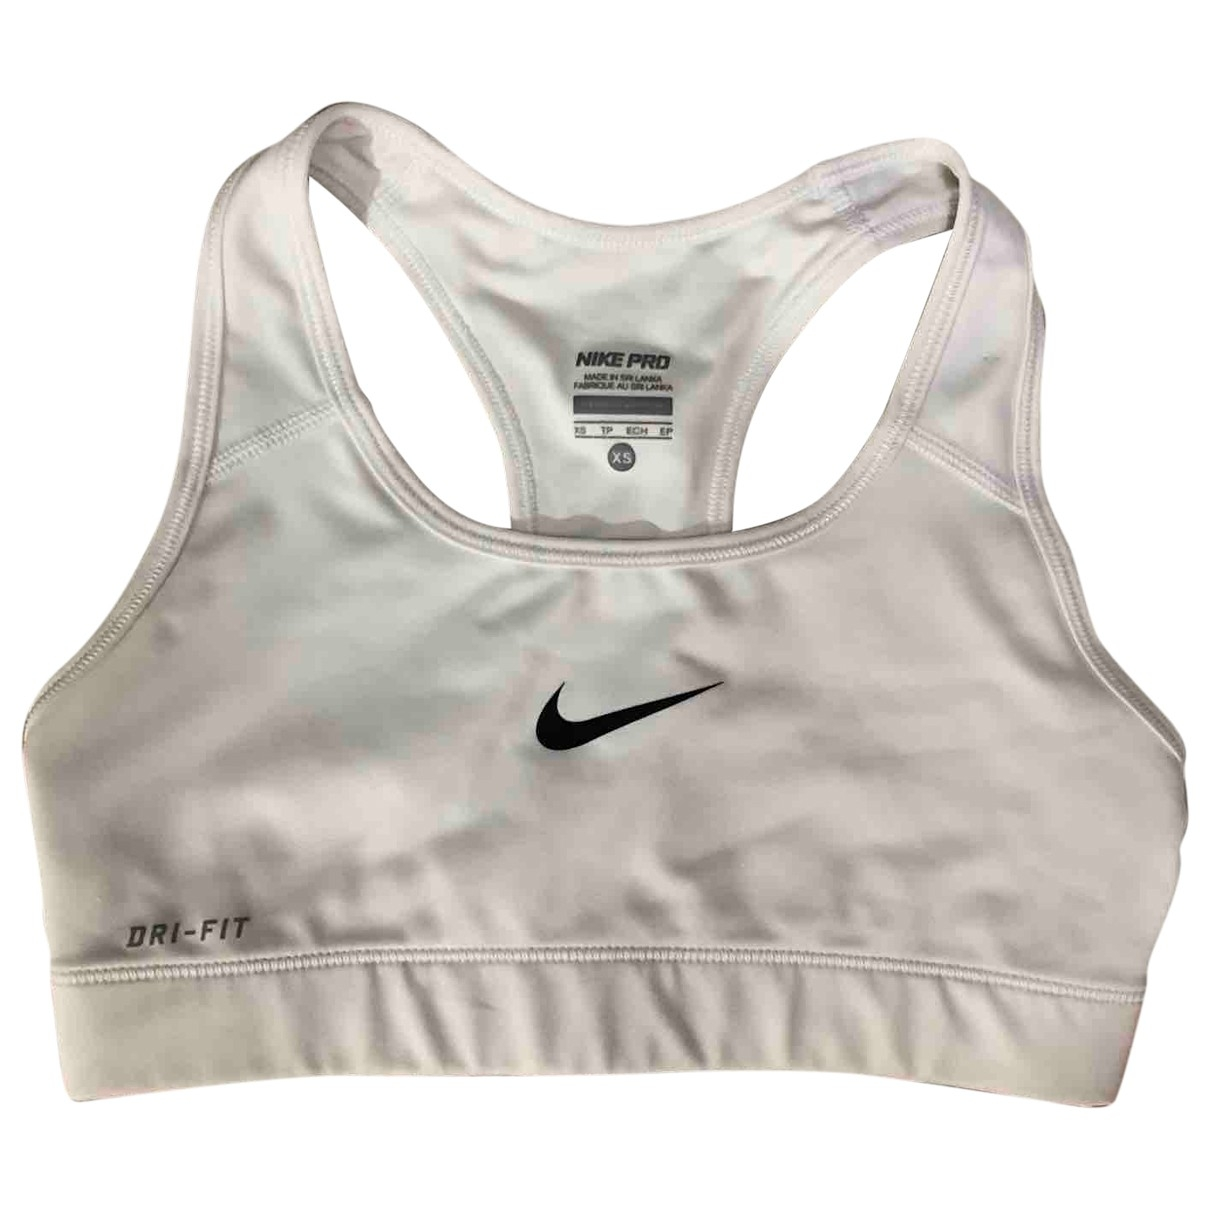 Nike \N White  top for Women XS International